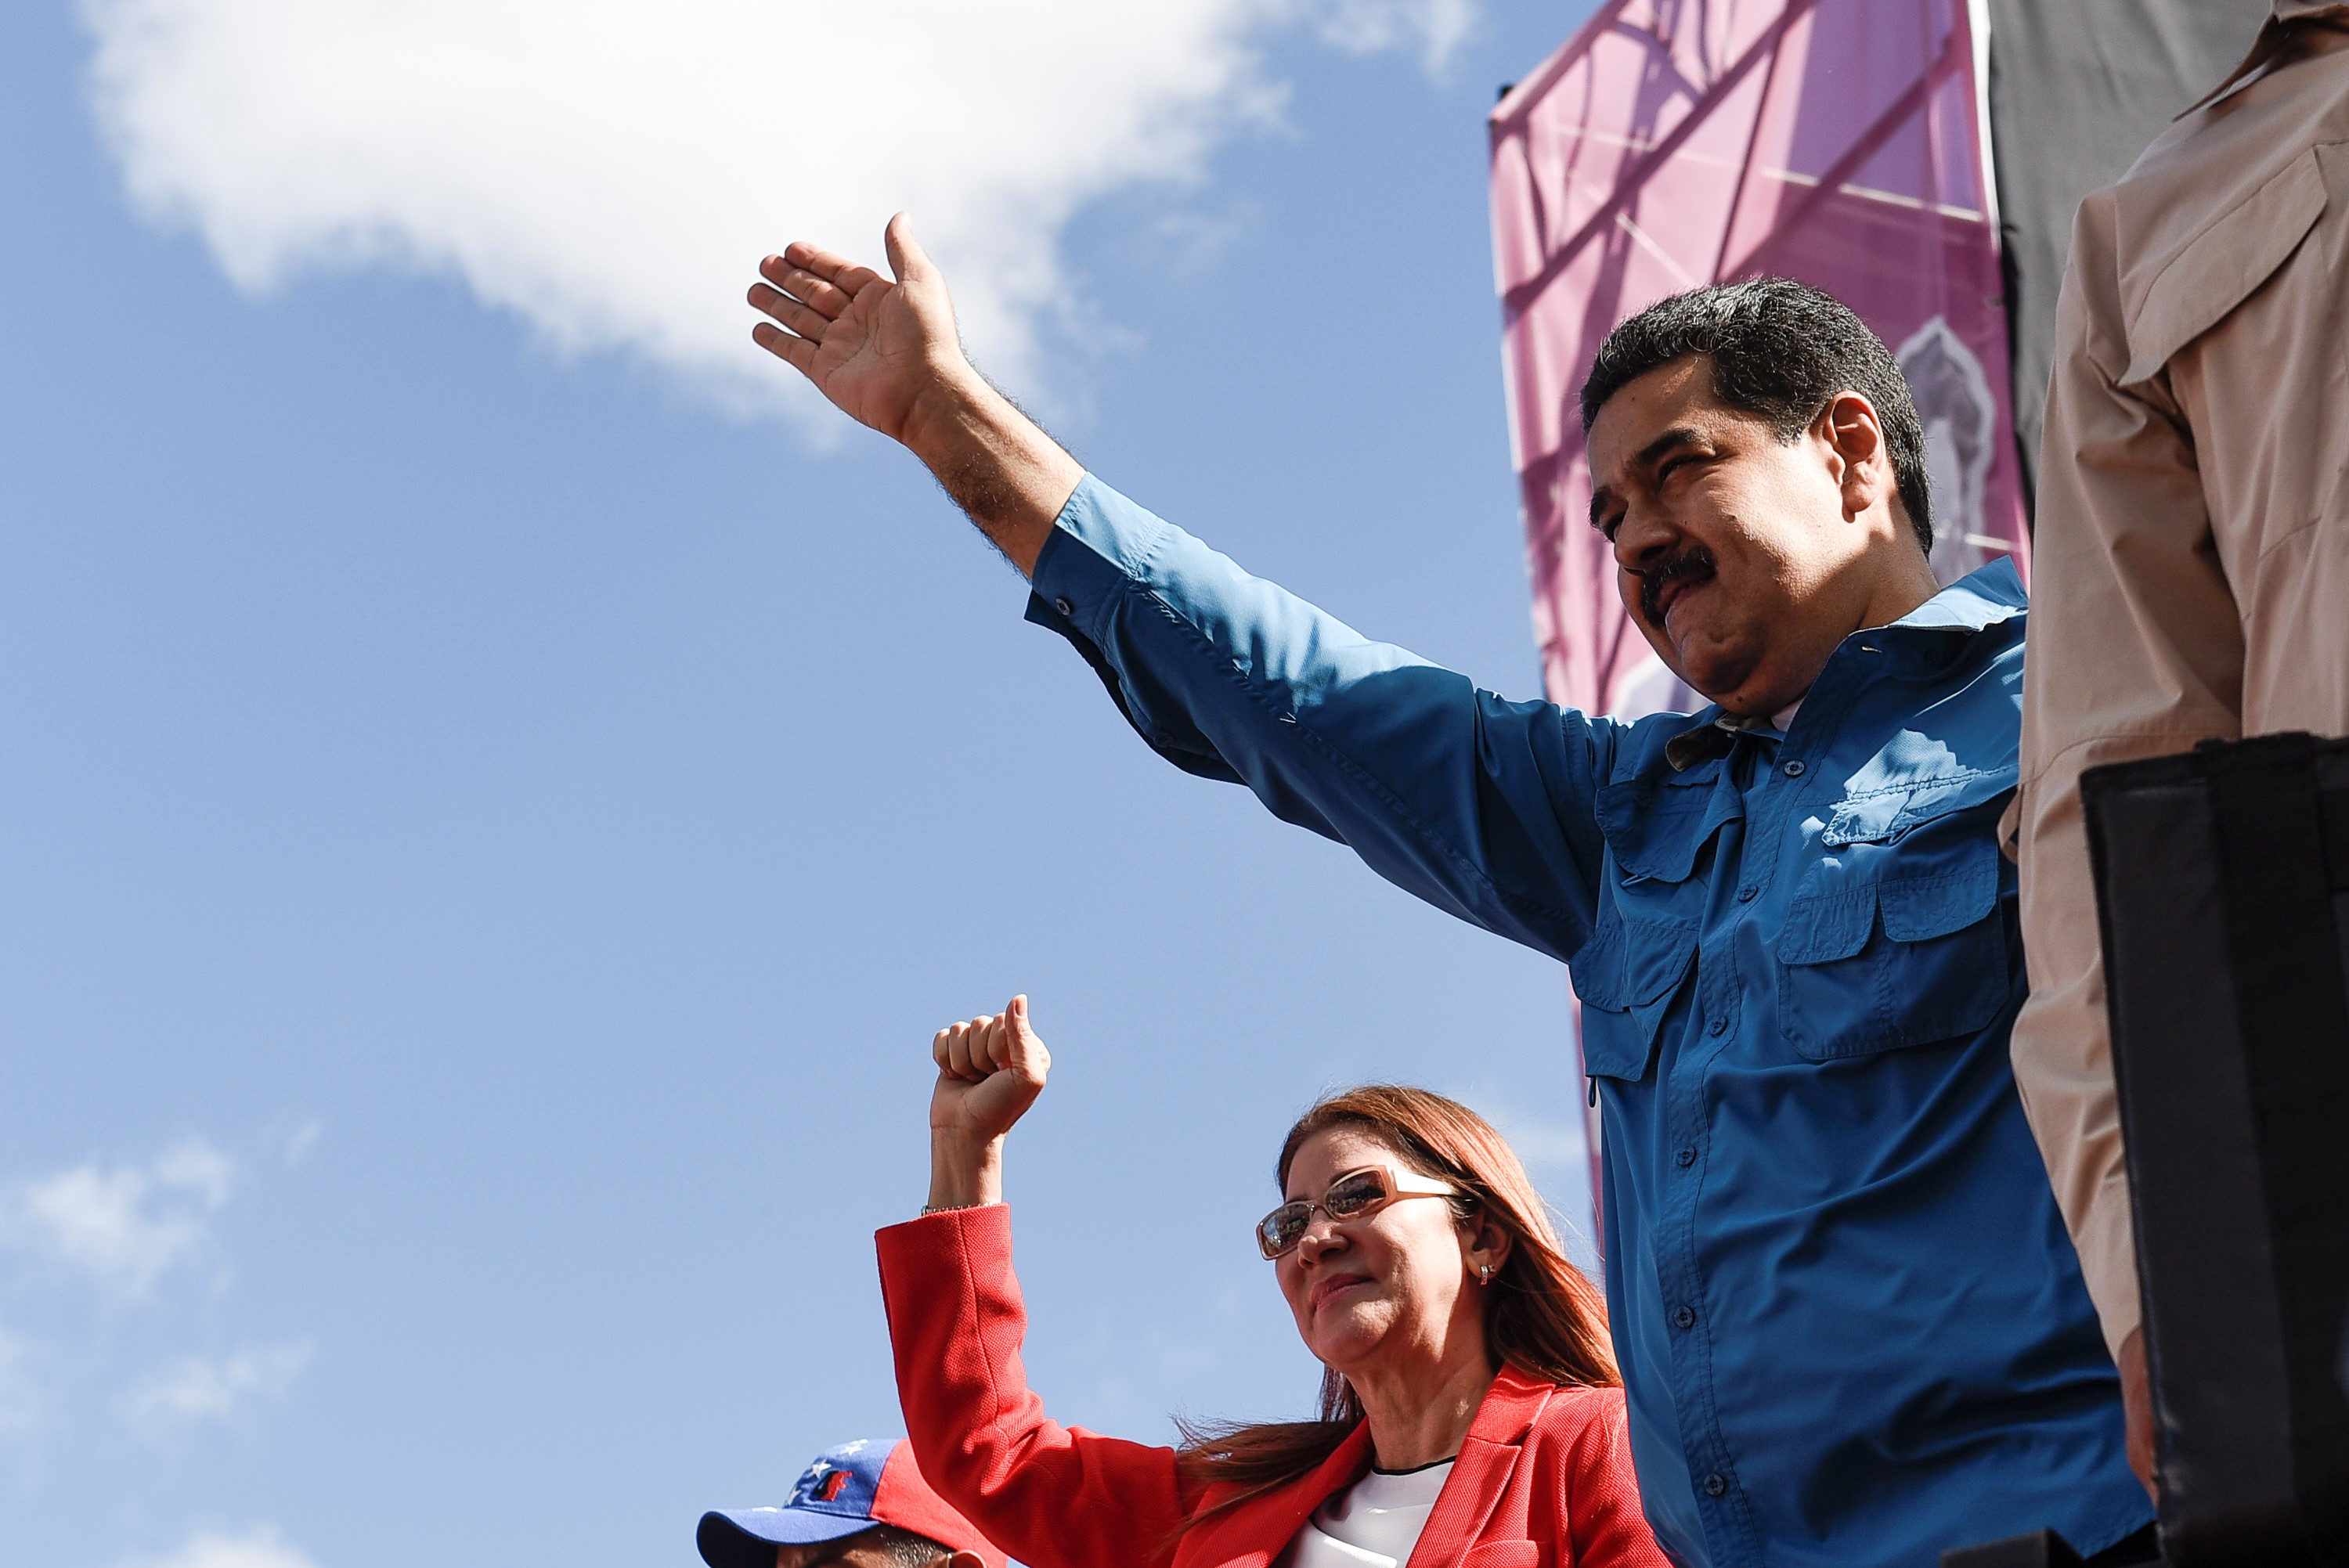 Venezuelan President Nicolas Maduro waves to his supporters during a rally in Caracas, Venezuela on Jan. 23, 2018.